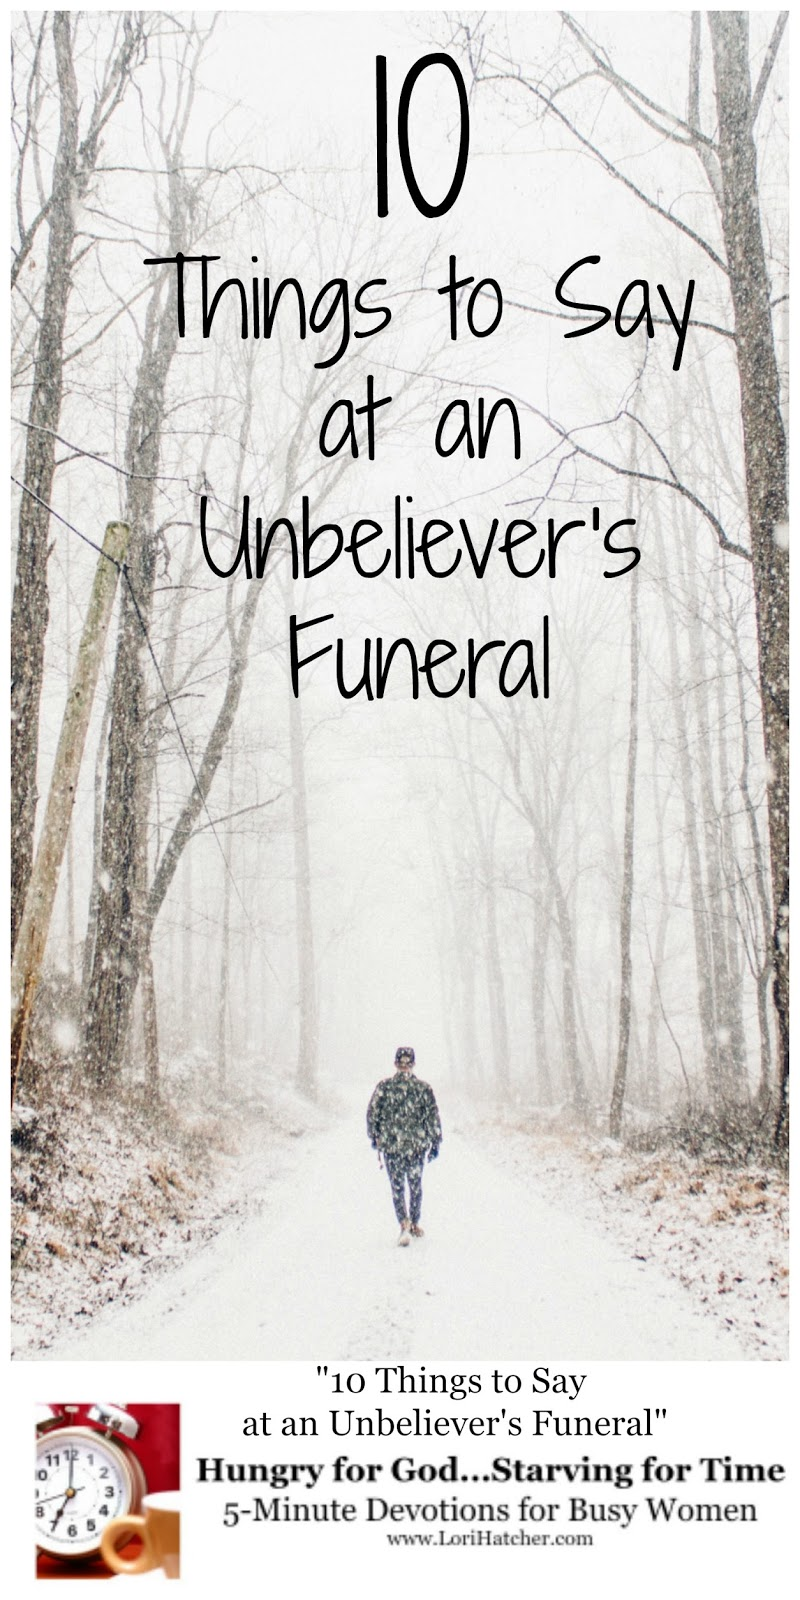 Hungry for God: 10 Things to Say at an Unbeliever's Funeral